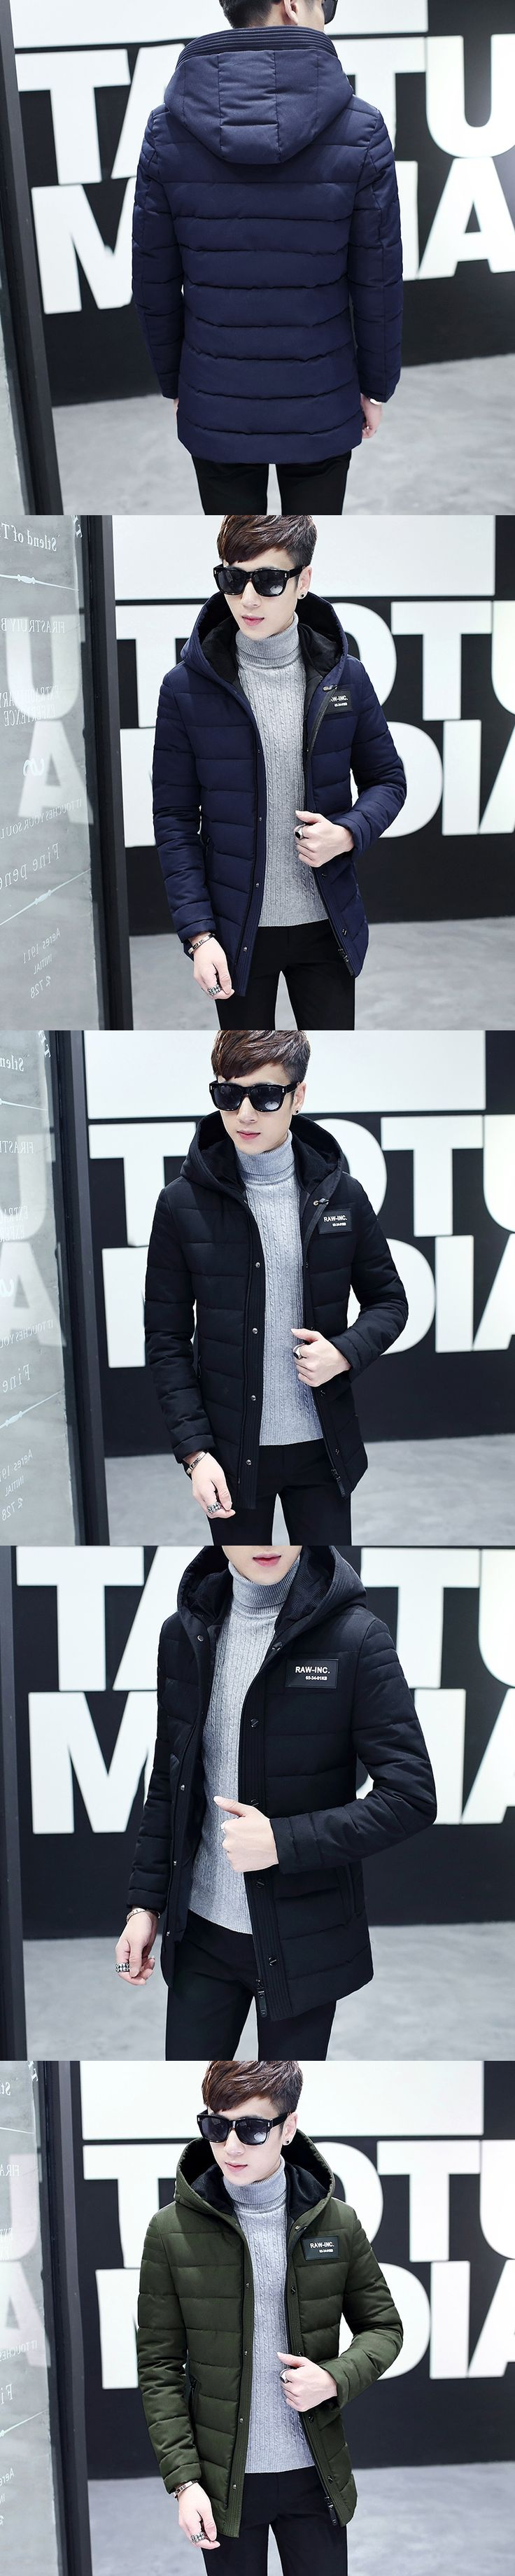 Winter Jacket Men Casual Thick velvet Warm Jackets Anti freezing Parkas hombre Mens cotton army Hooded jacket long trench coat